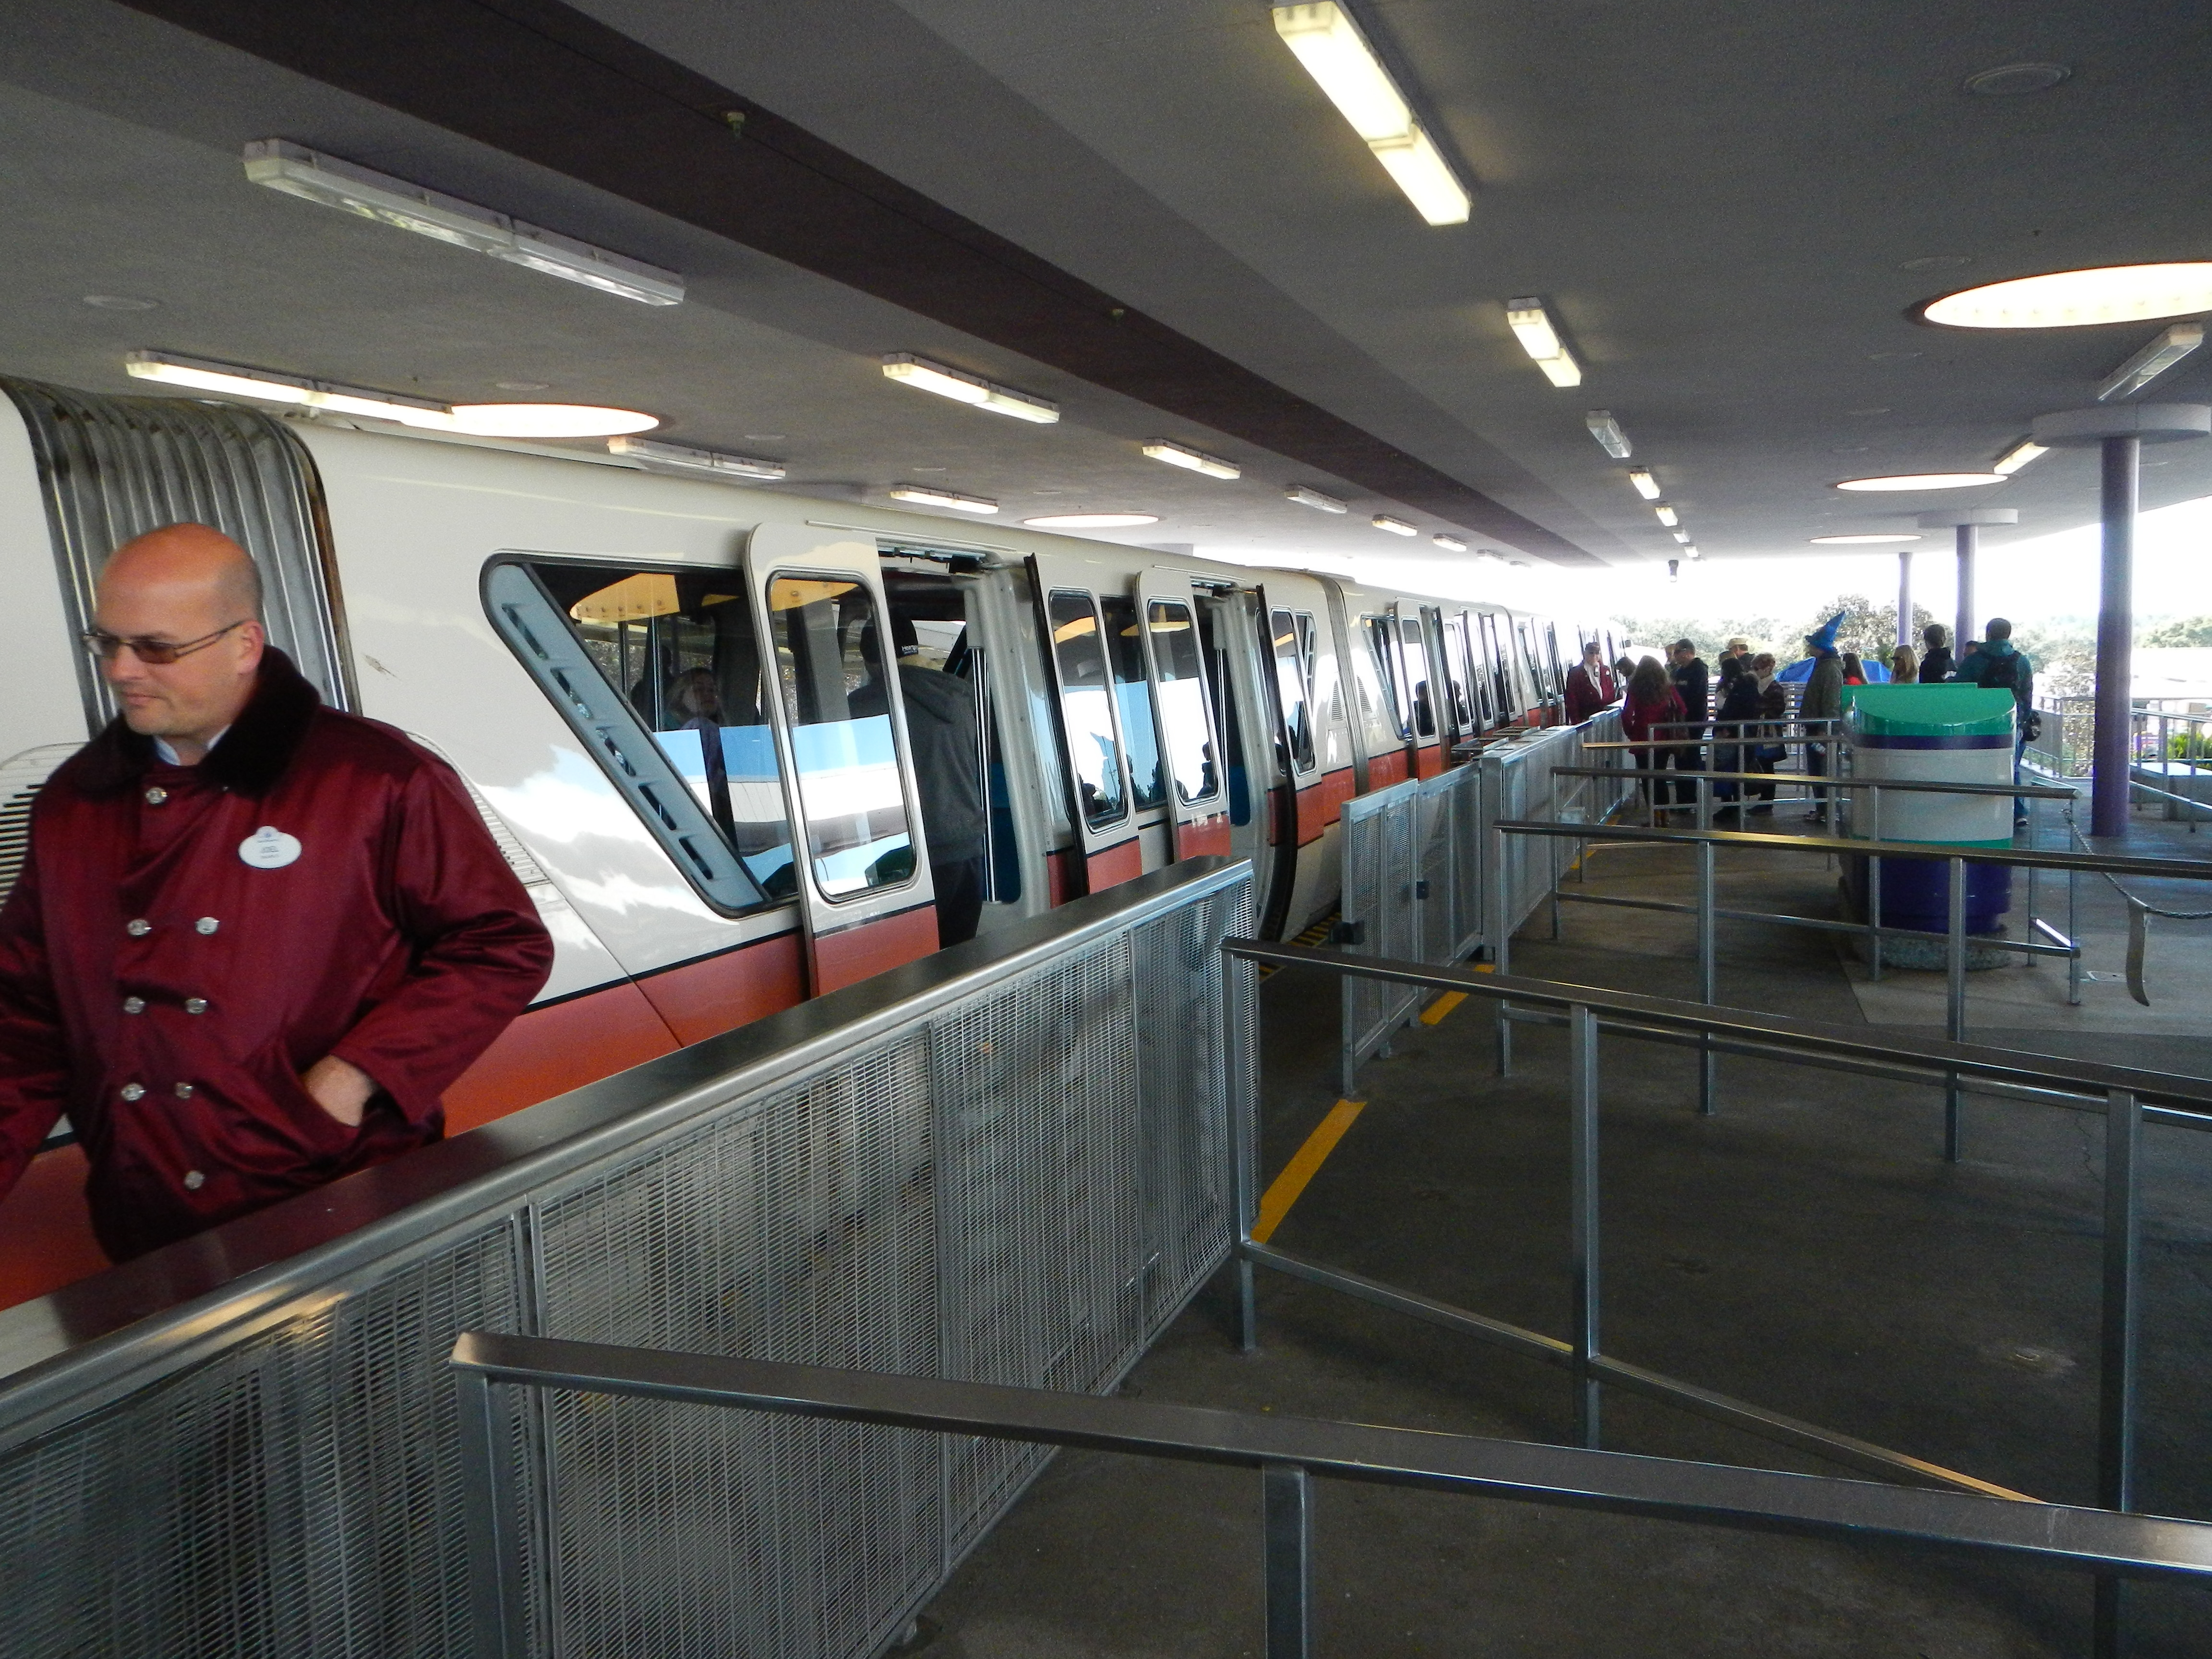 Monorail at Disney Transportation Center to Epcot